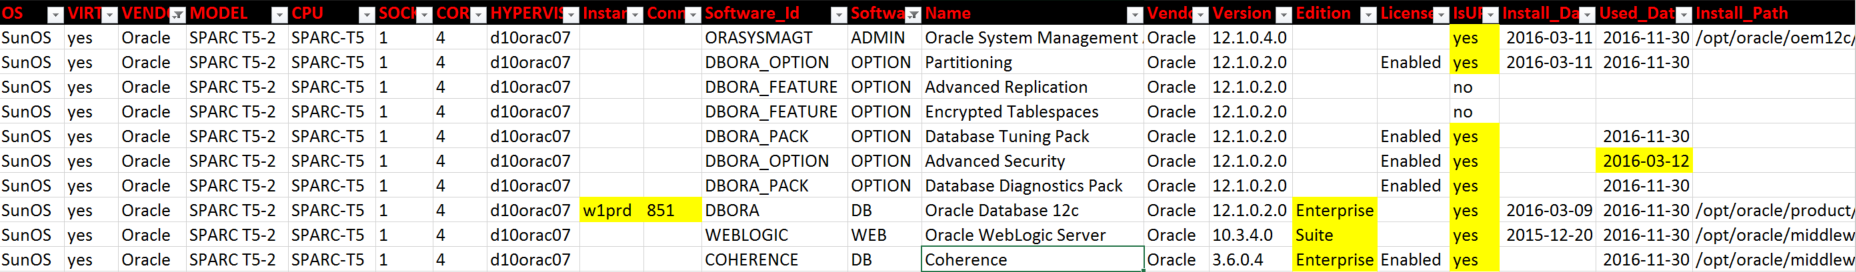 Oracle Licensing Report Example